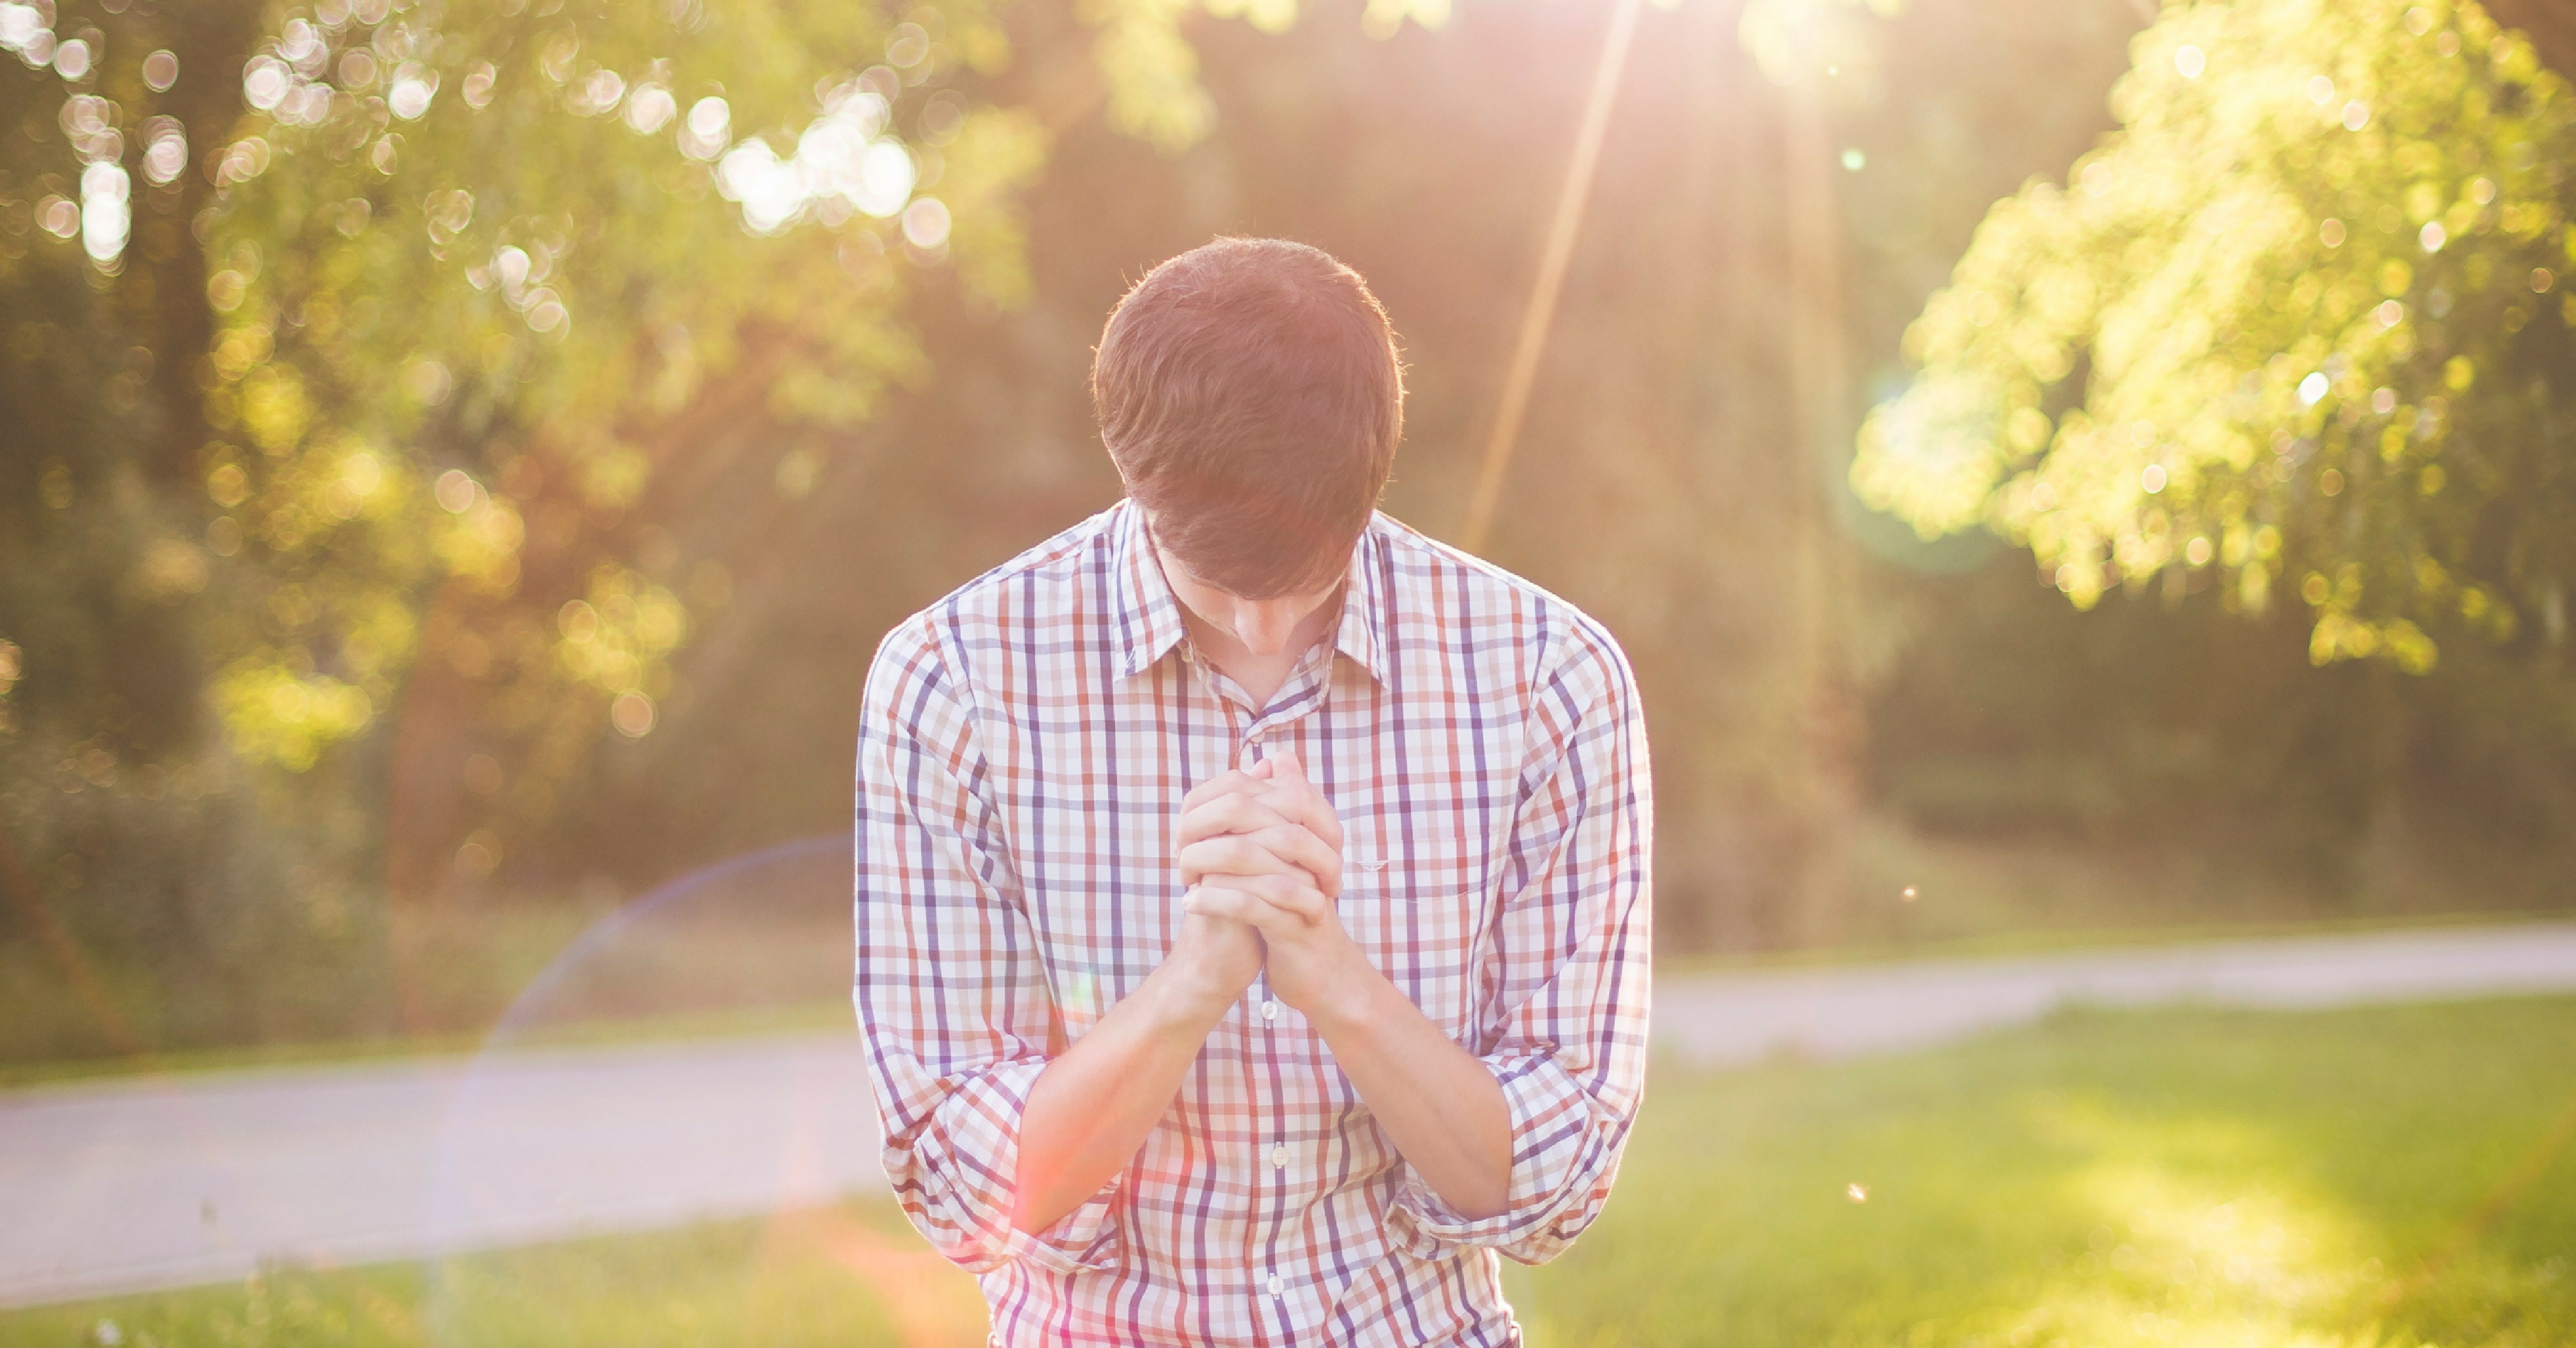 5 Simple But Powerful Tips For A Better Prayer Life